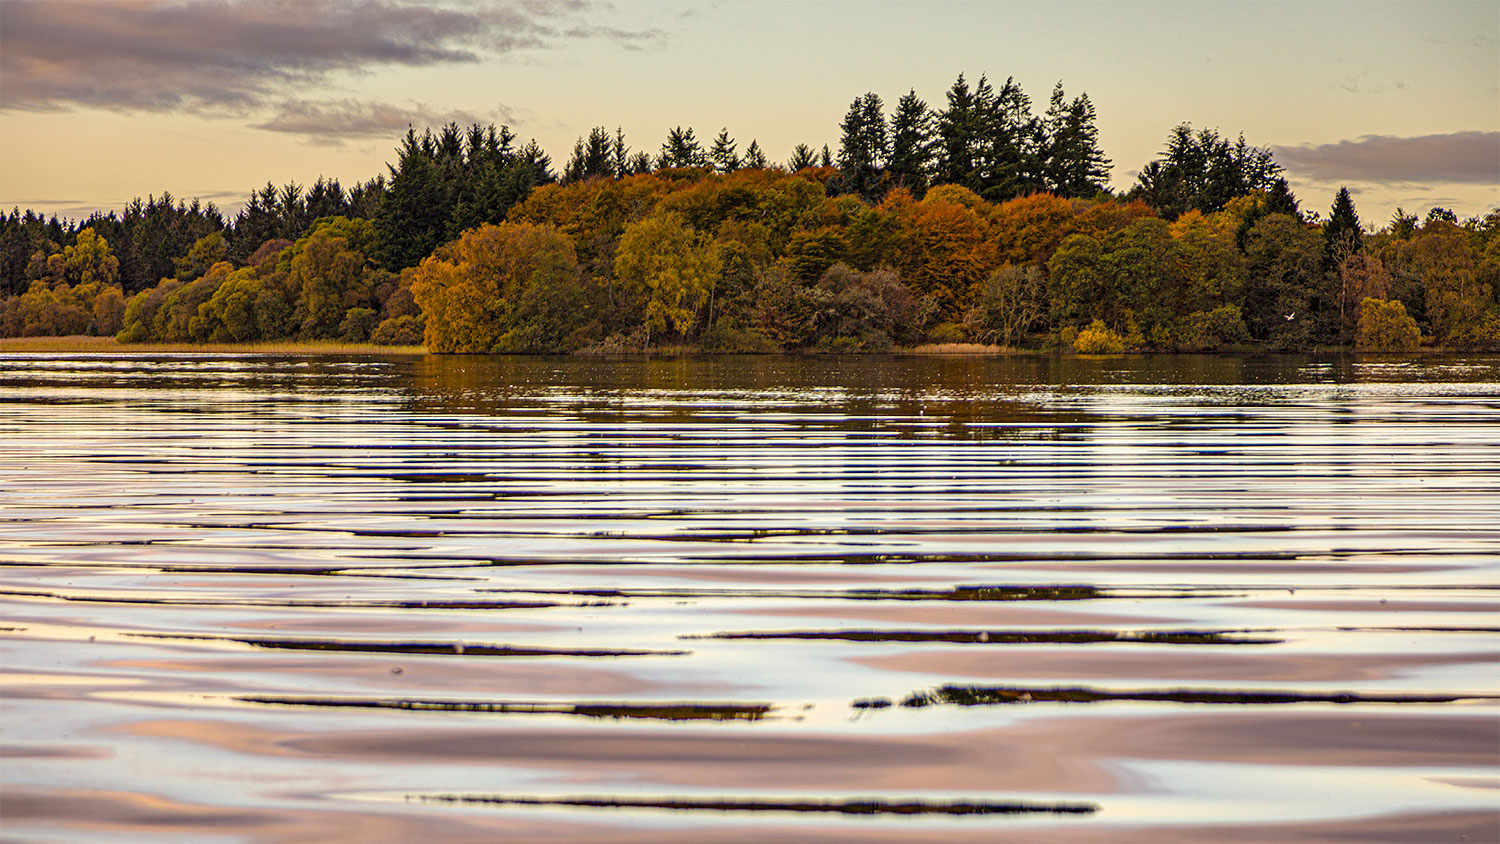 Menteith16Oct20_4341-HDR.jpg